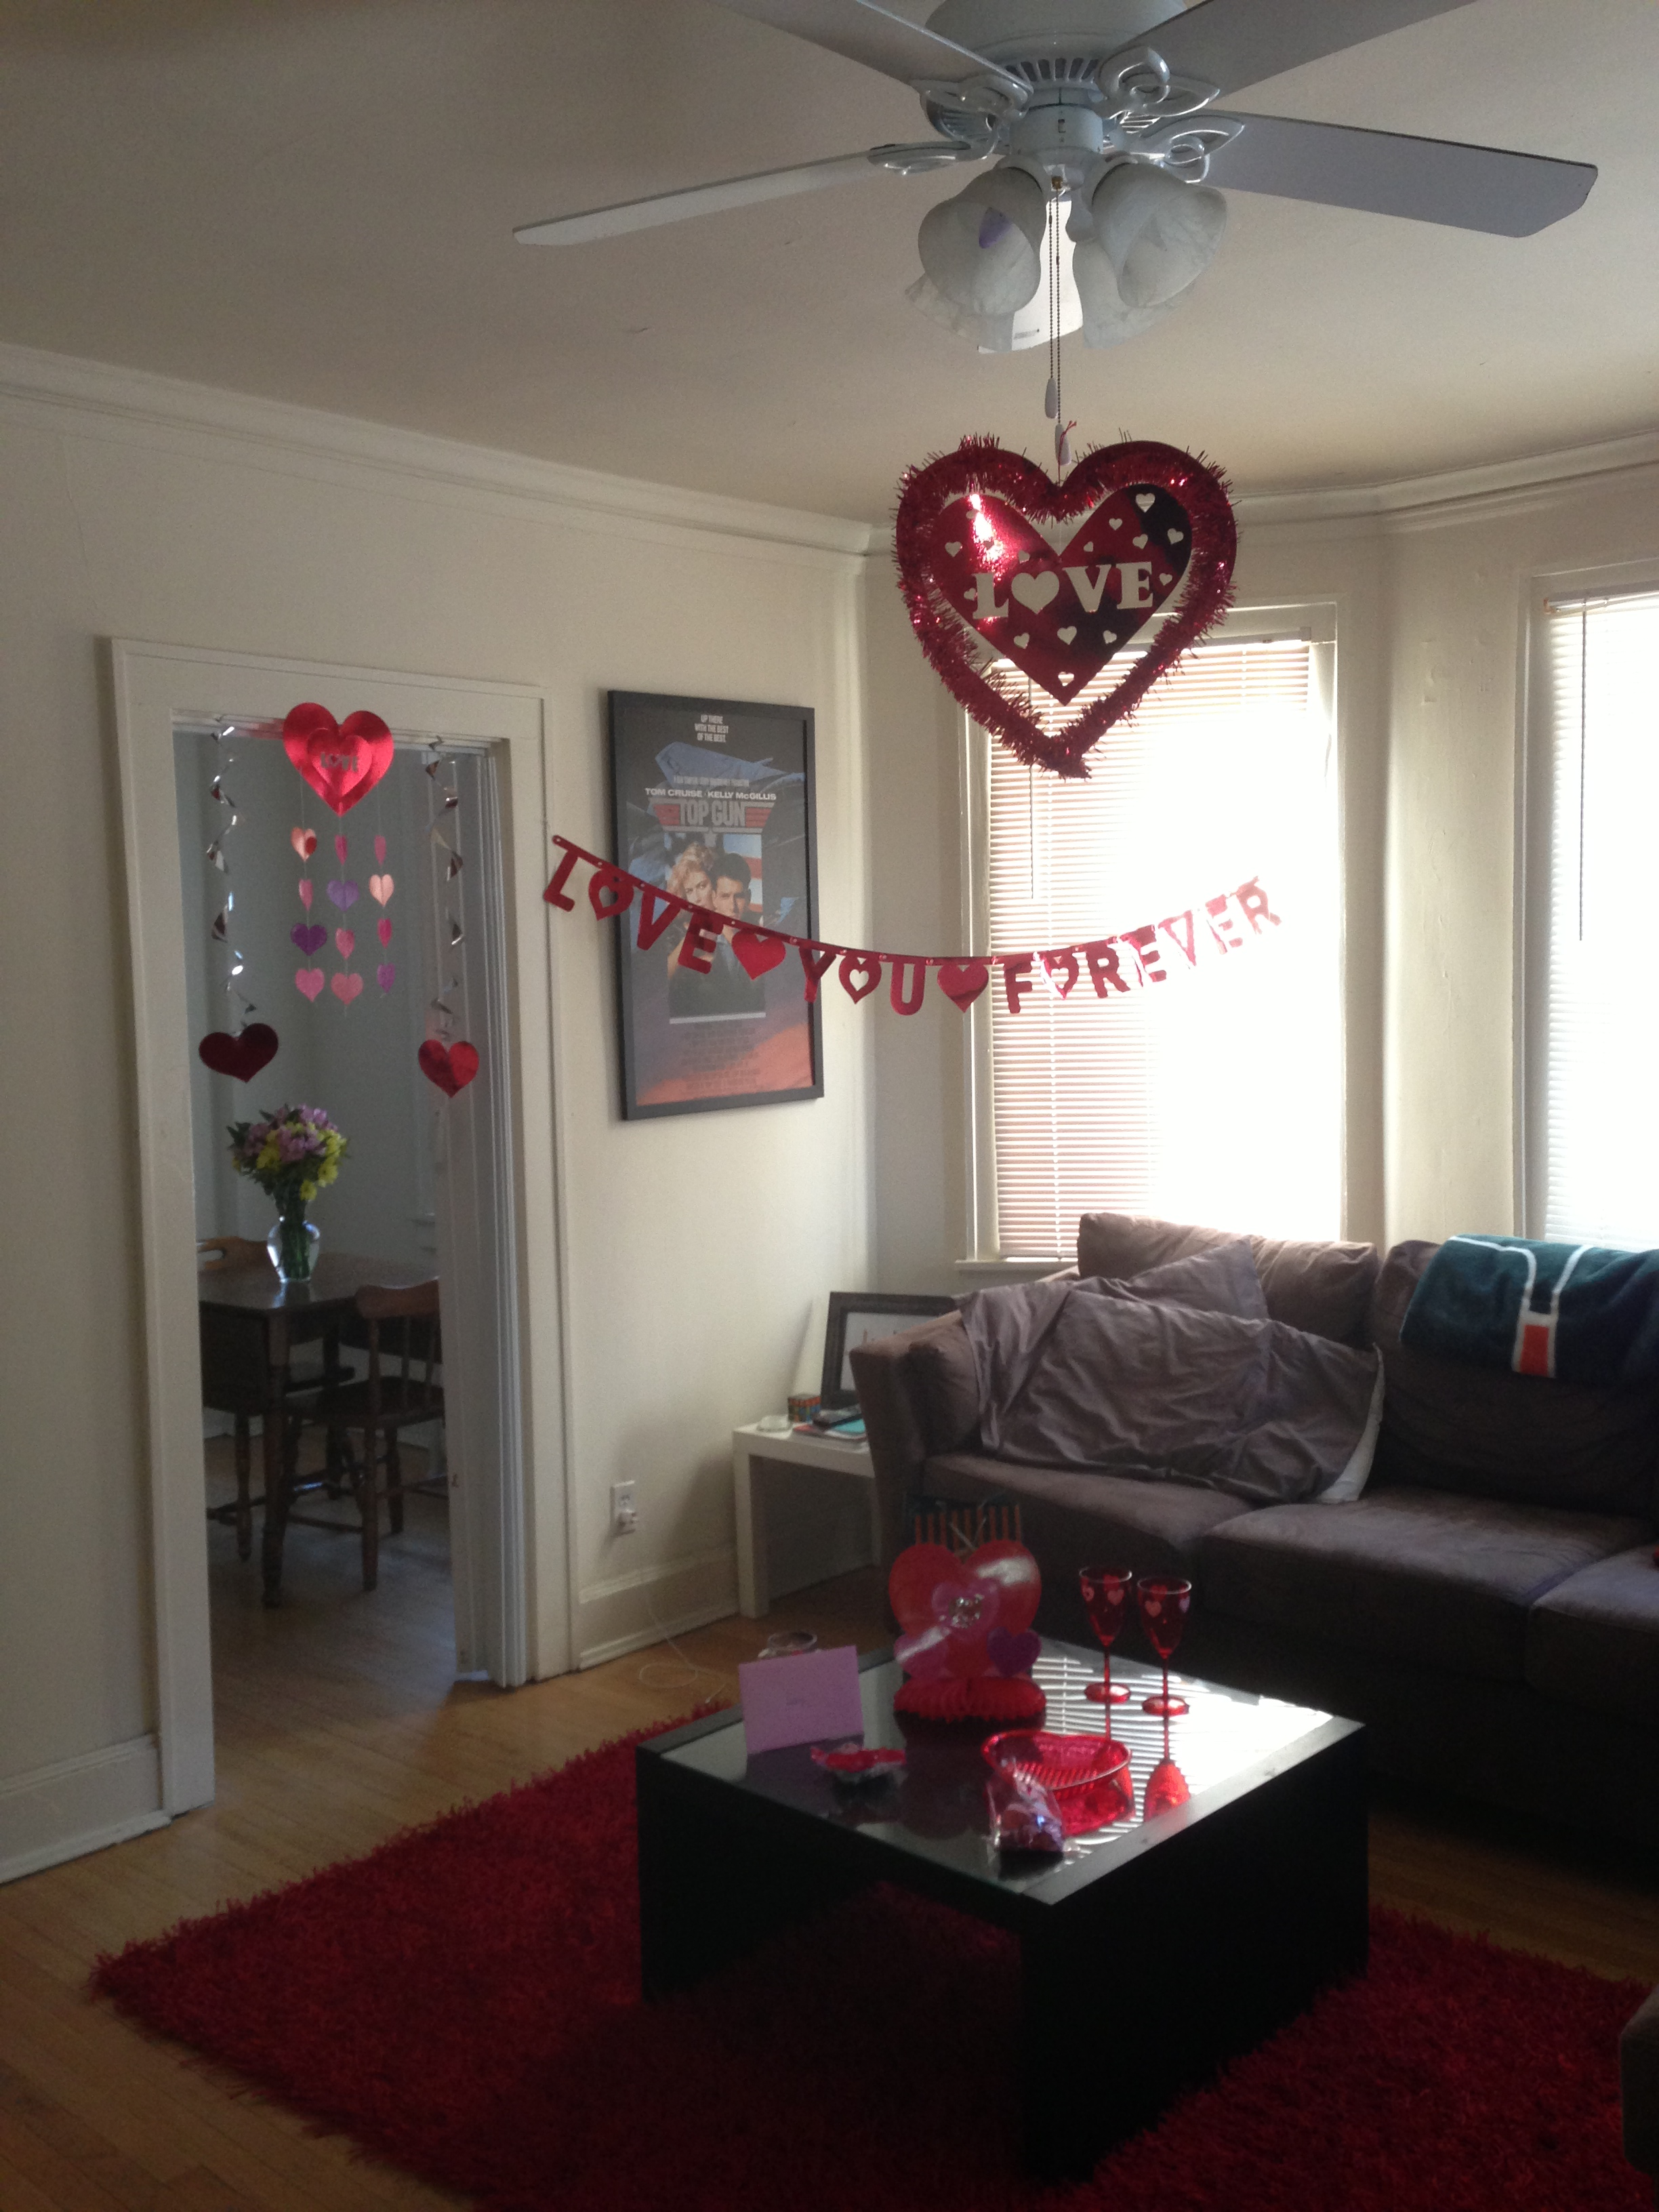 Valentines day decorations the majestic vision - Valentine day room decoration ...